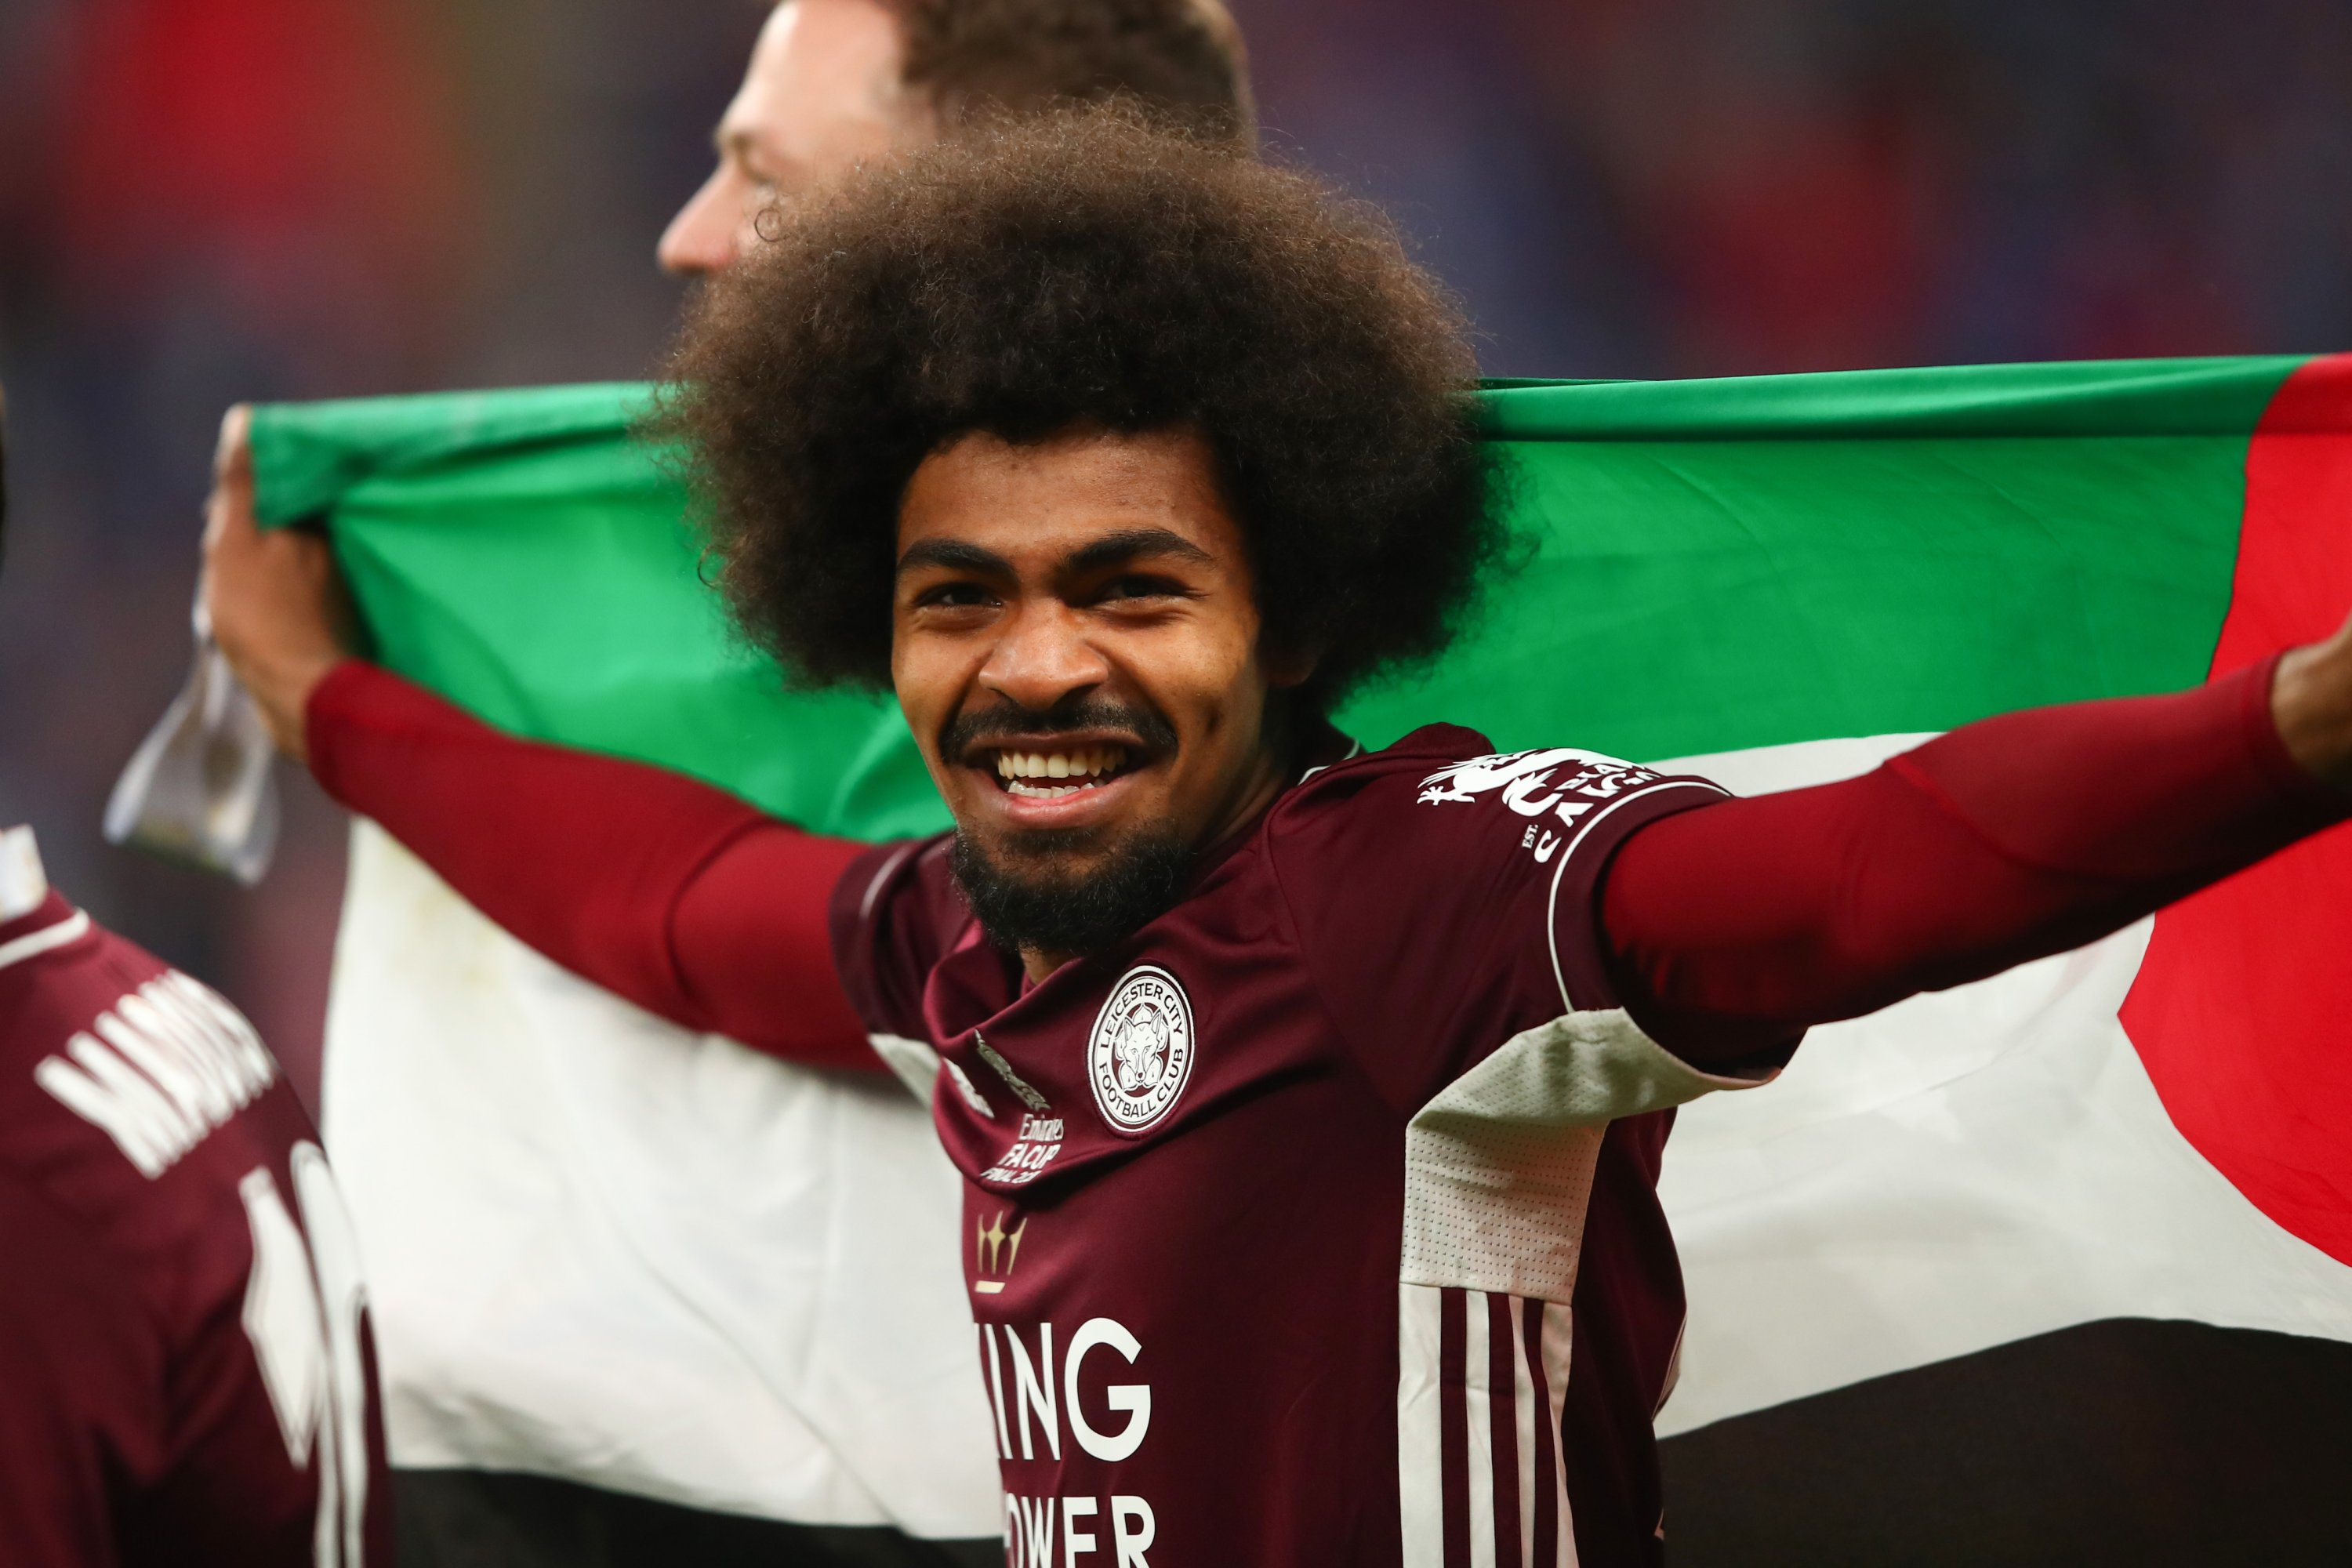 Leicester City's Hamza Choudhury displays a Palestine flag as he celebrates winning the FA Cup at Wembley Stadium, London, England, May 15, 2021. (Getty Images)